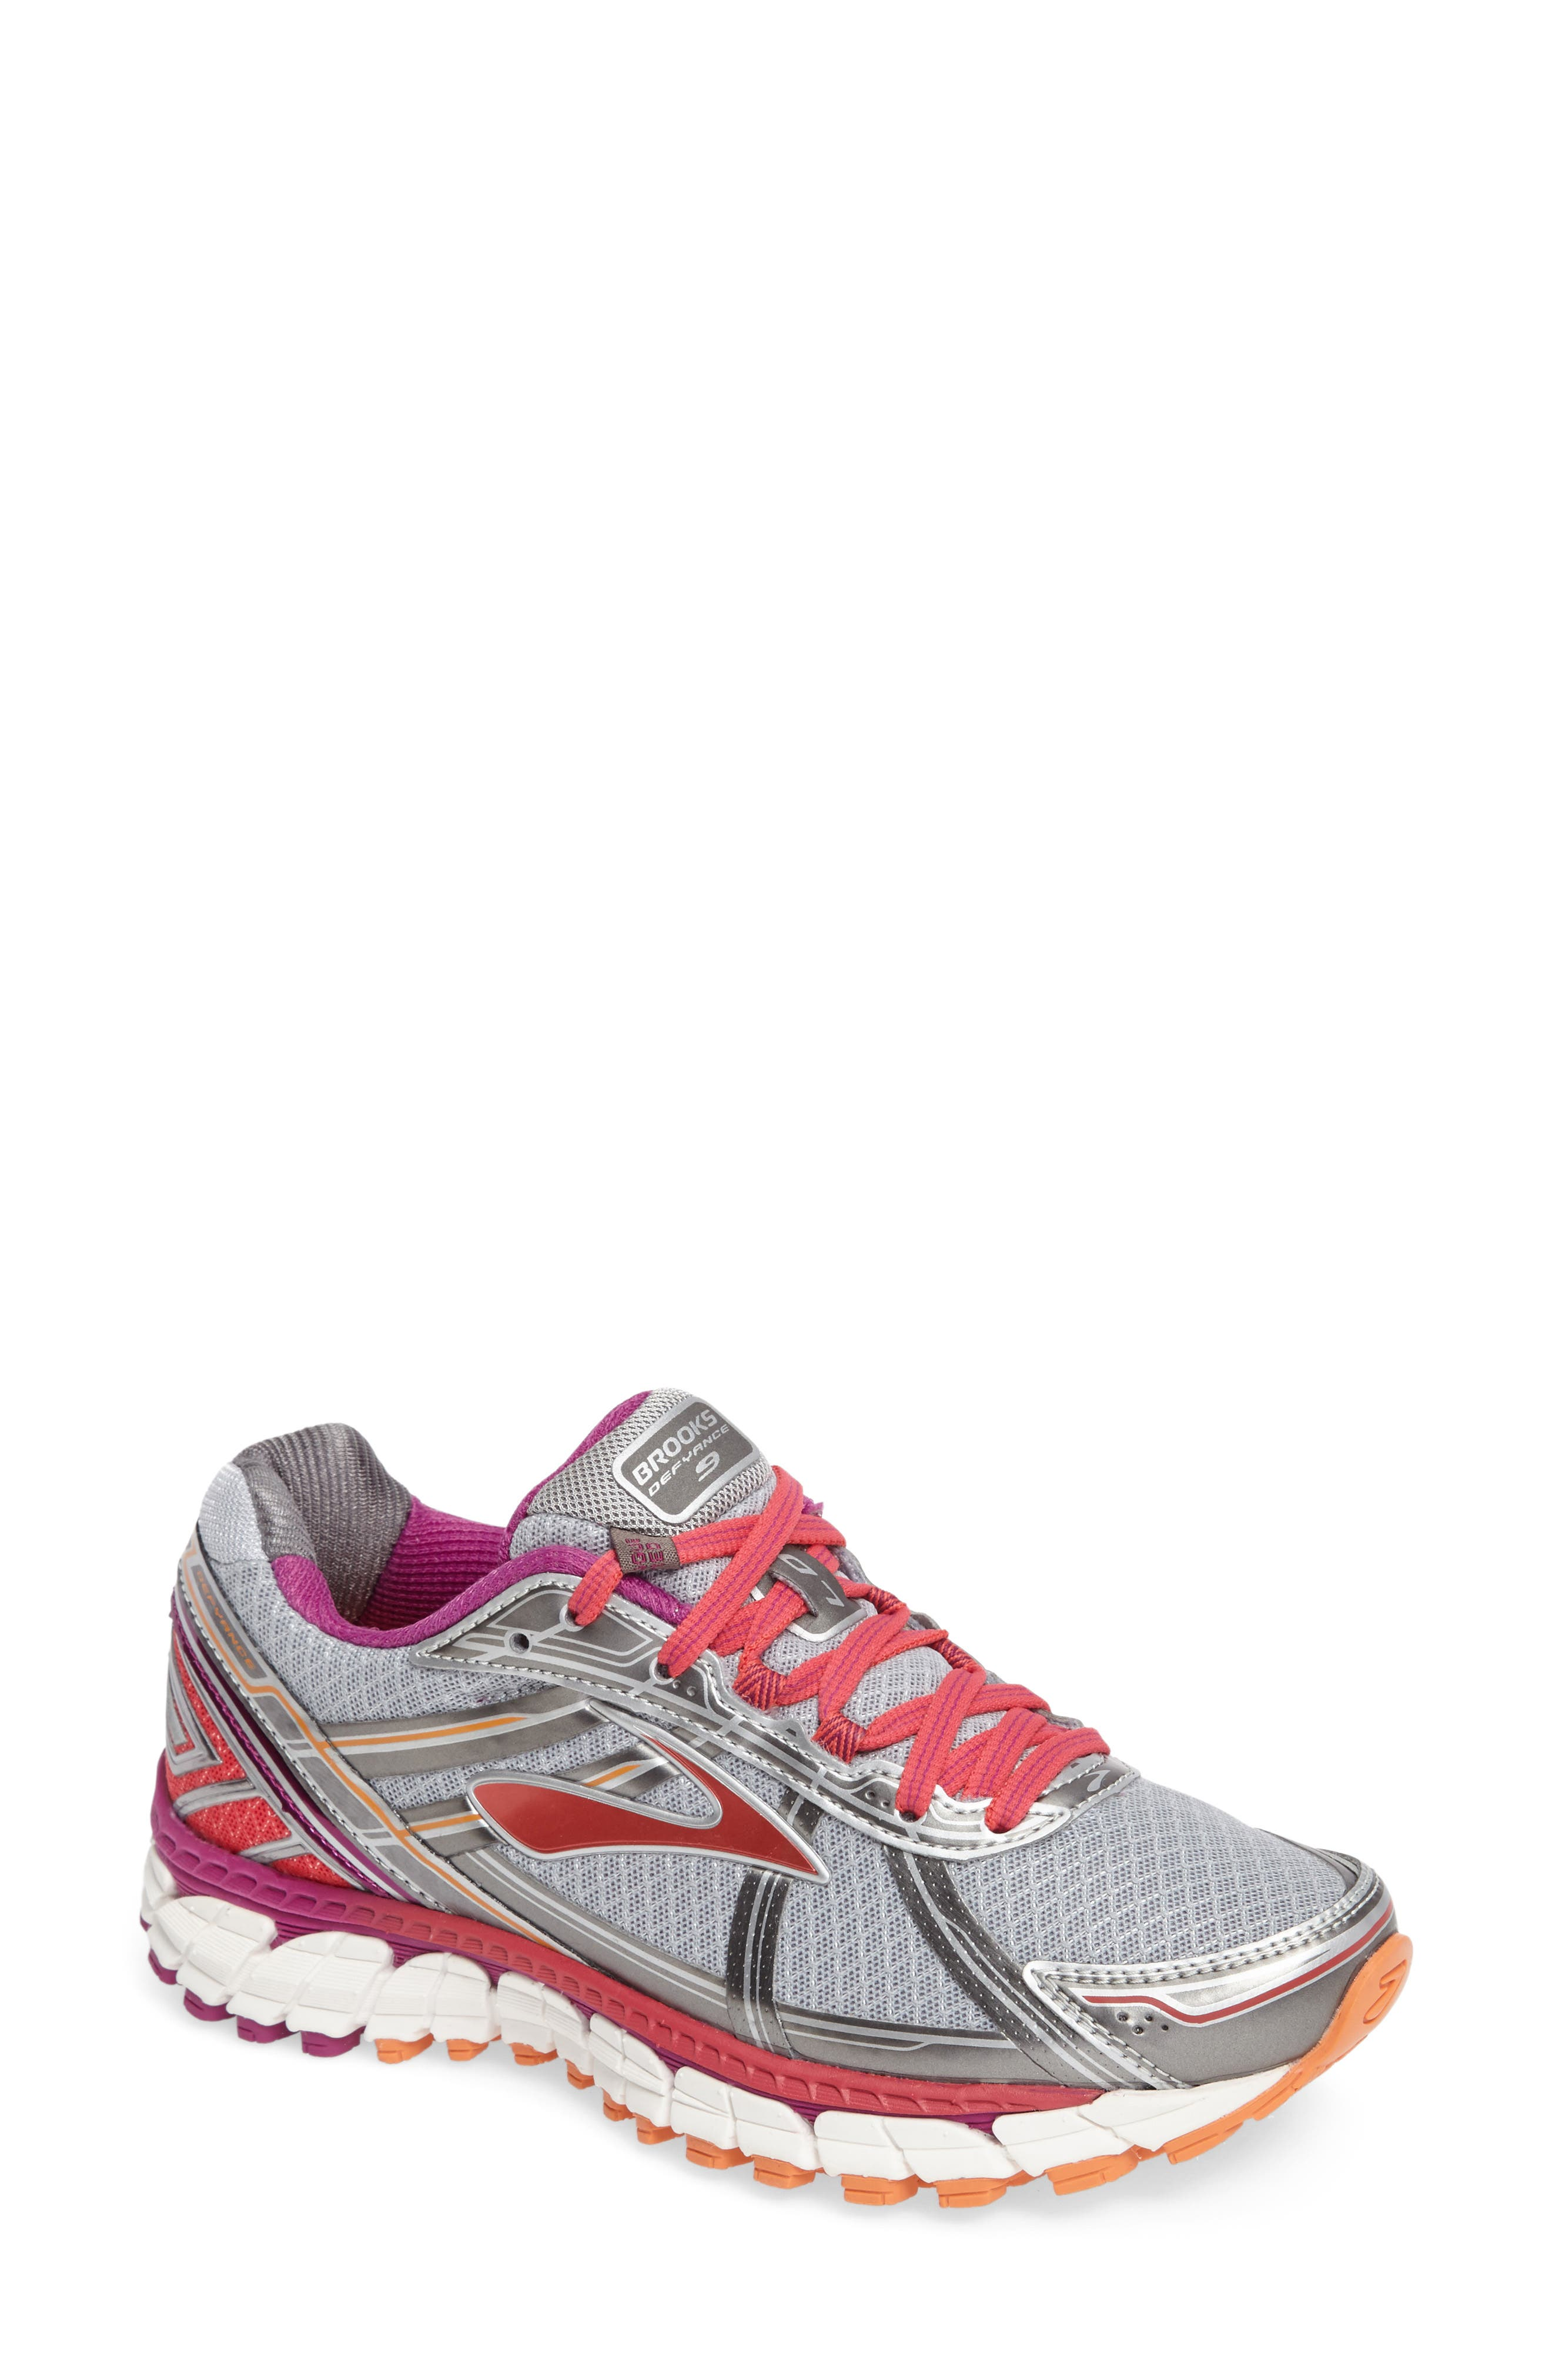 Main Image - Brooks Defyance 9 Running Shoe (Women)